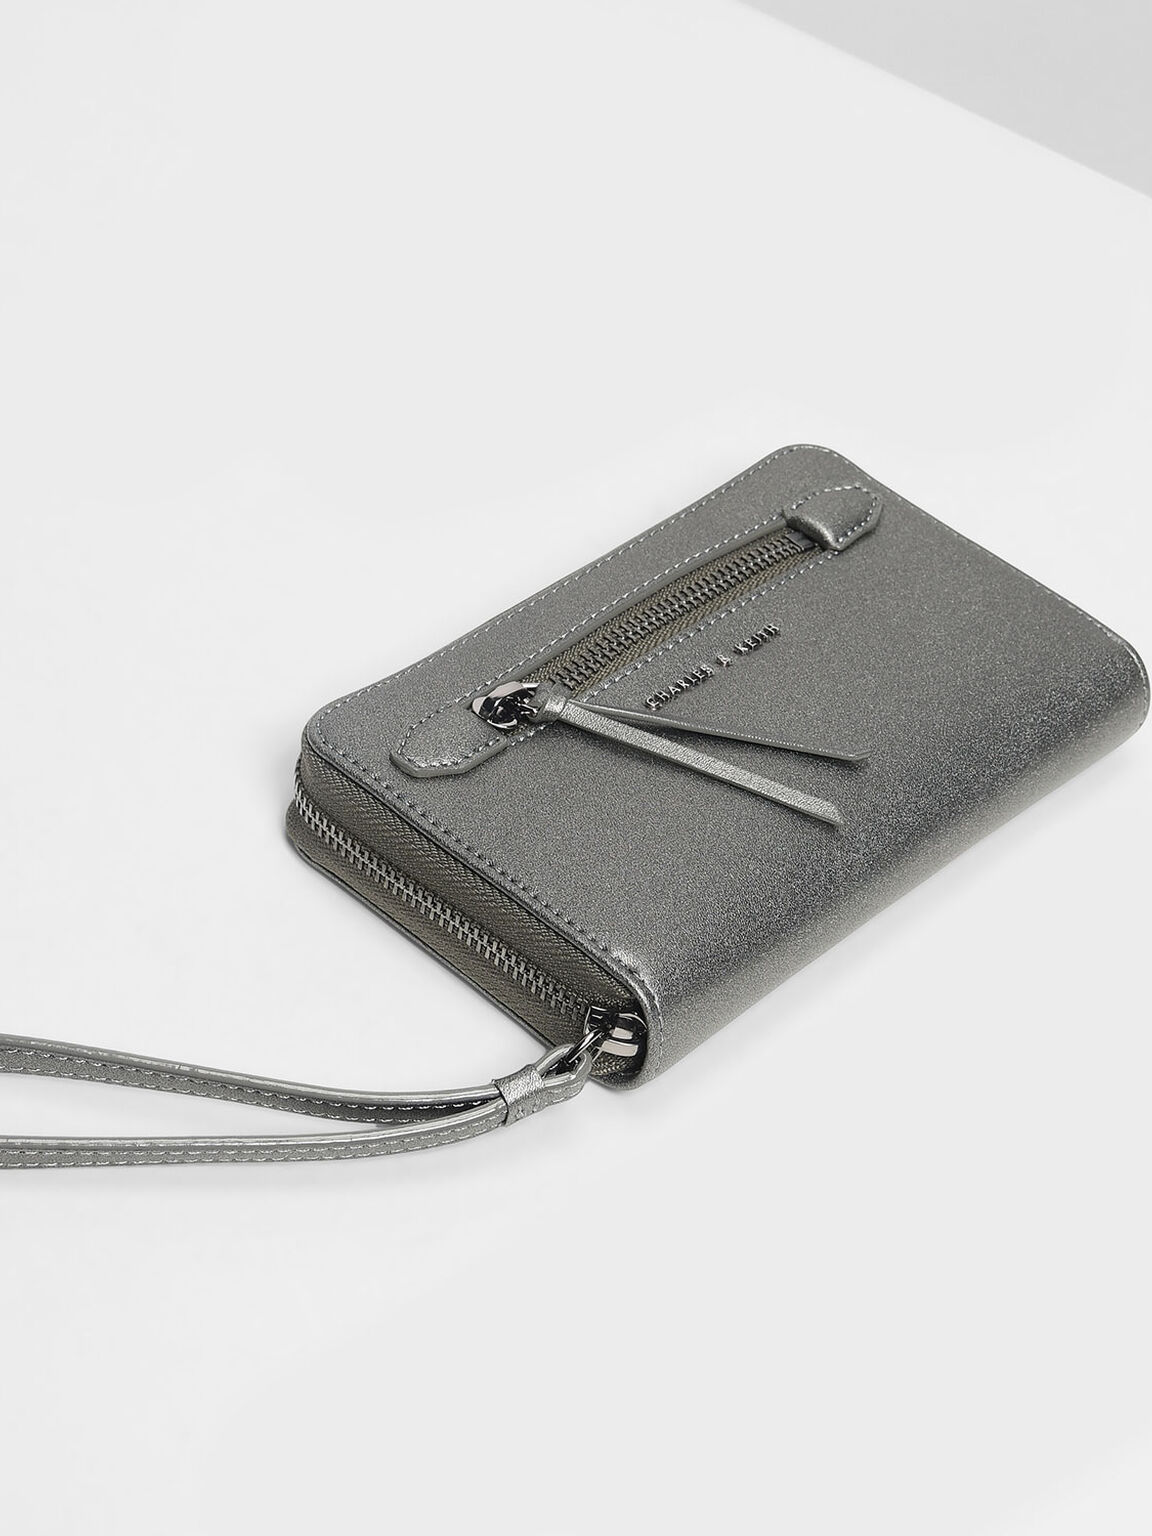 Zipped Wristlet, Pewter, hi-res